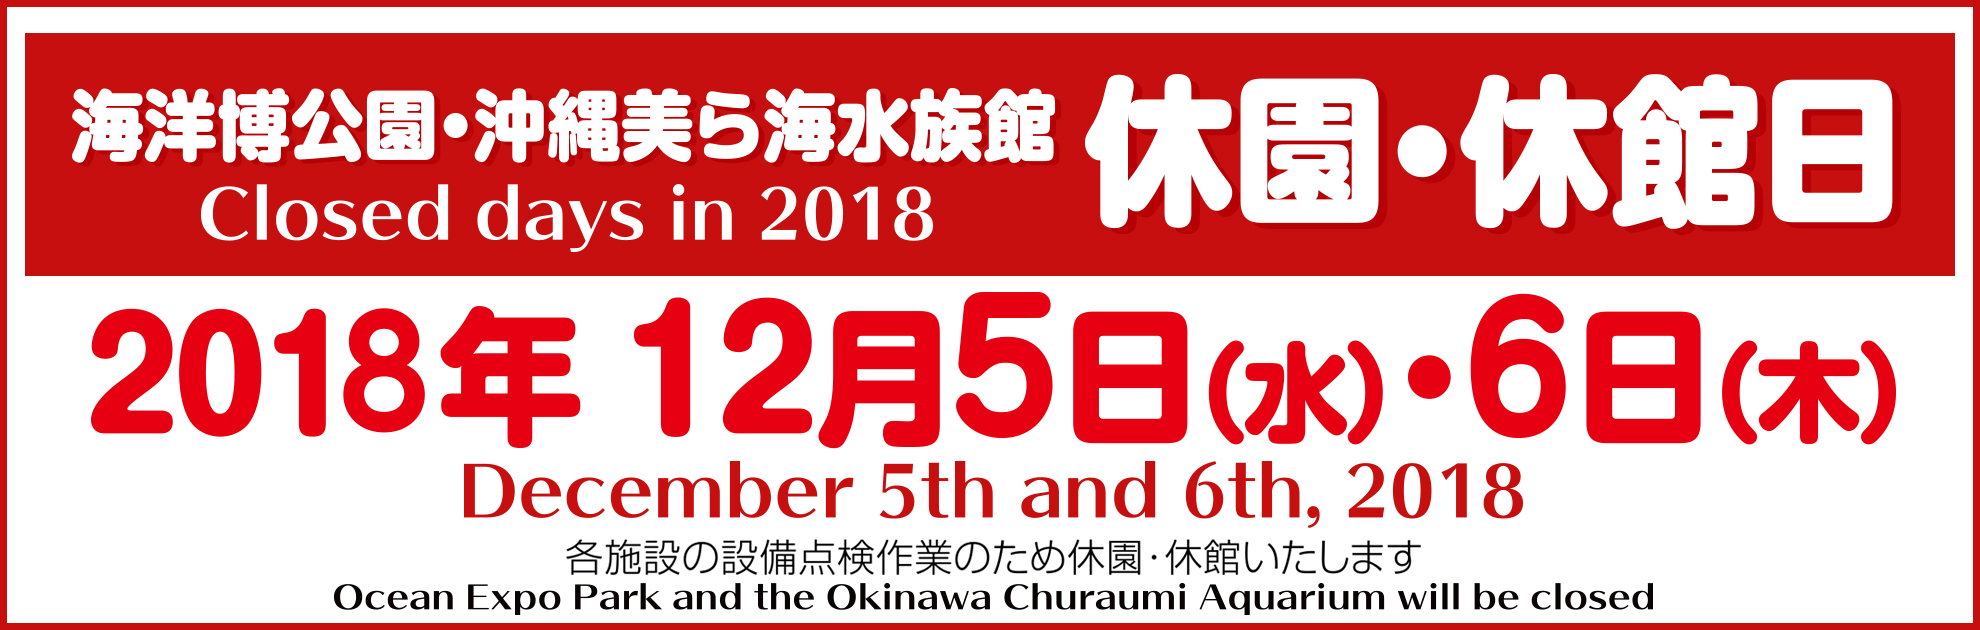 The Ocean Expo Park and the Okinawa Churaumi Aquarium will be closed on December 5th and 6th, 2018.